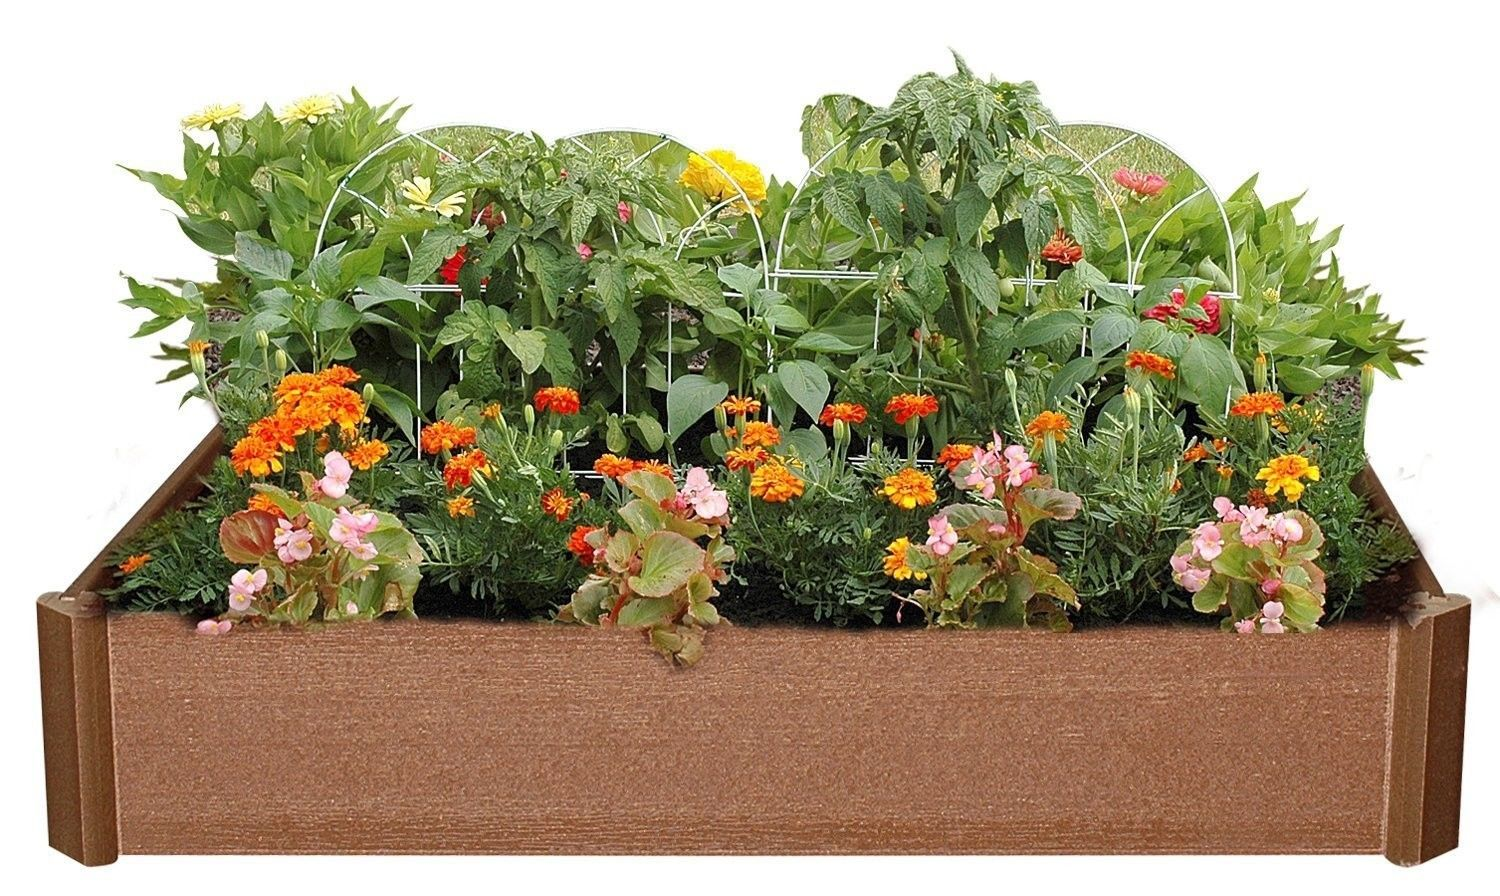 42-inch x 42-inch x 6-inch High Raised Garden Bed Planter Box Kit Stackable Deco